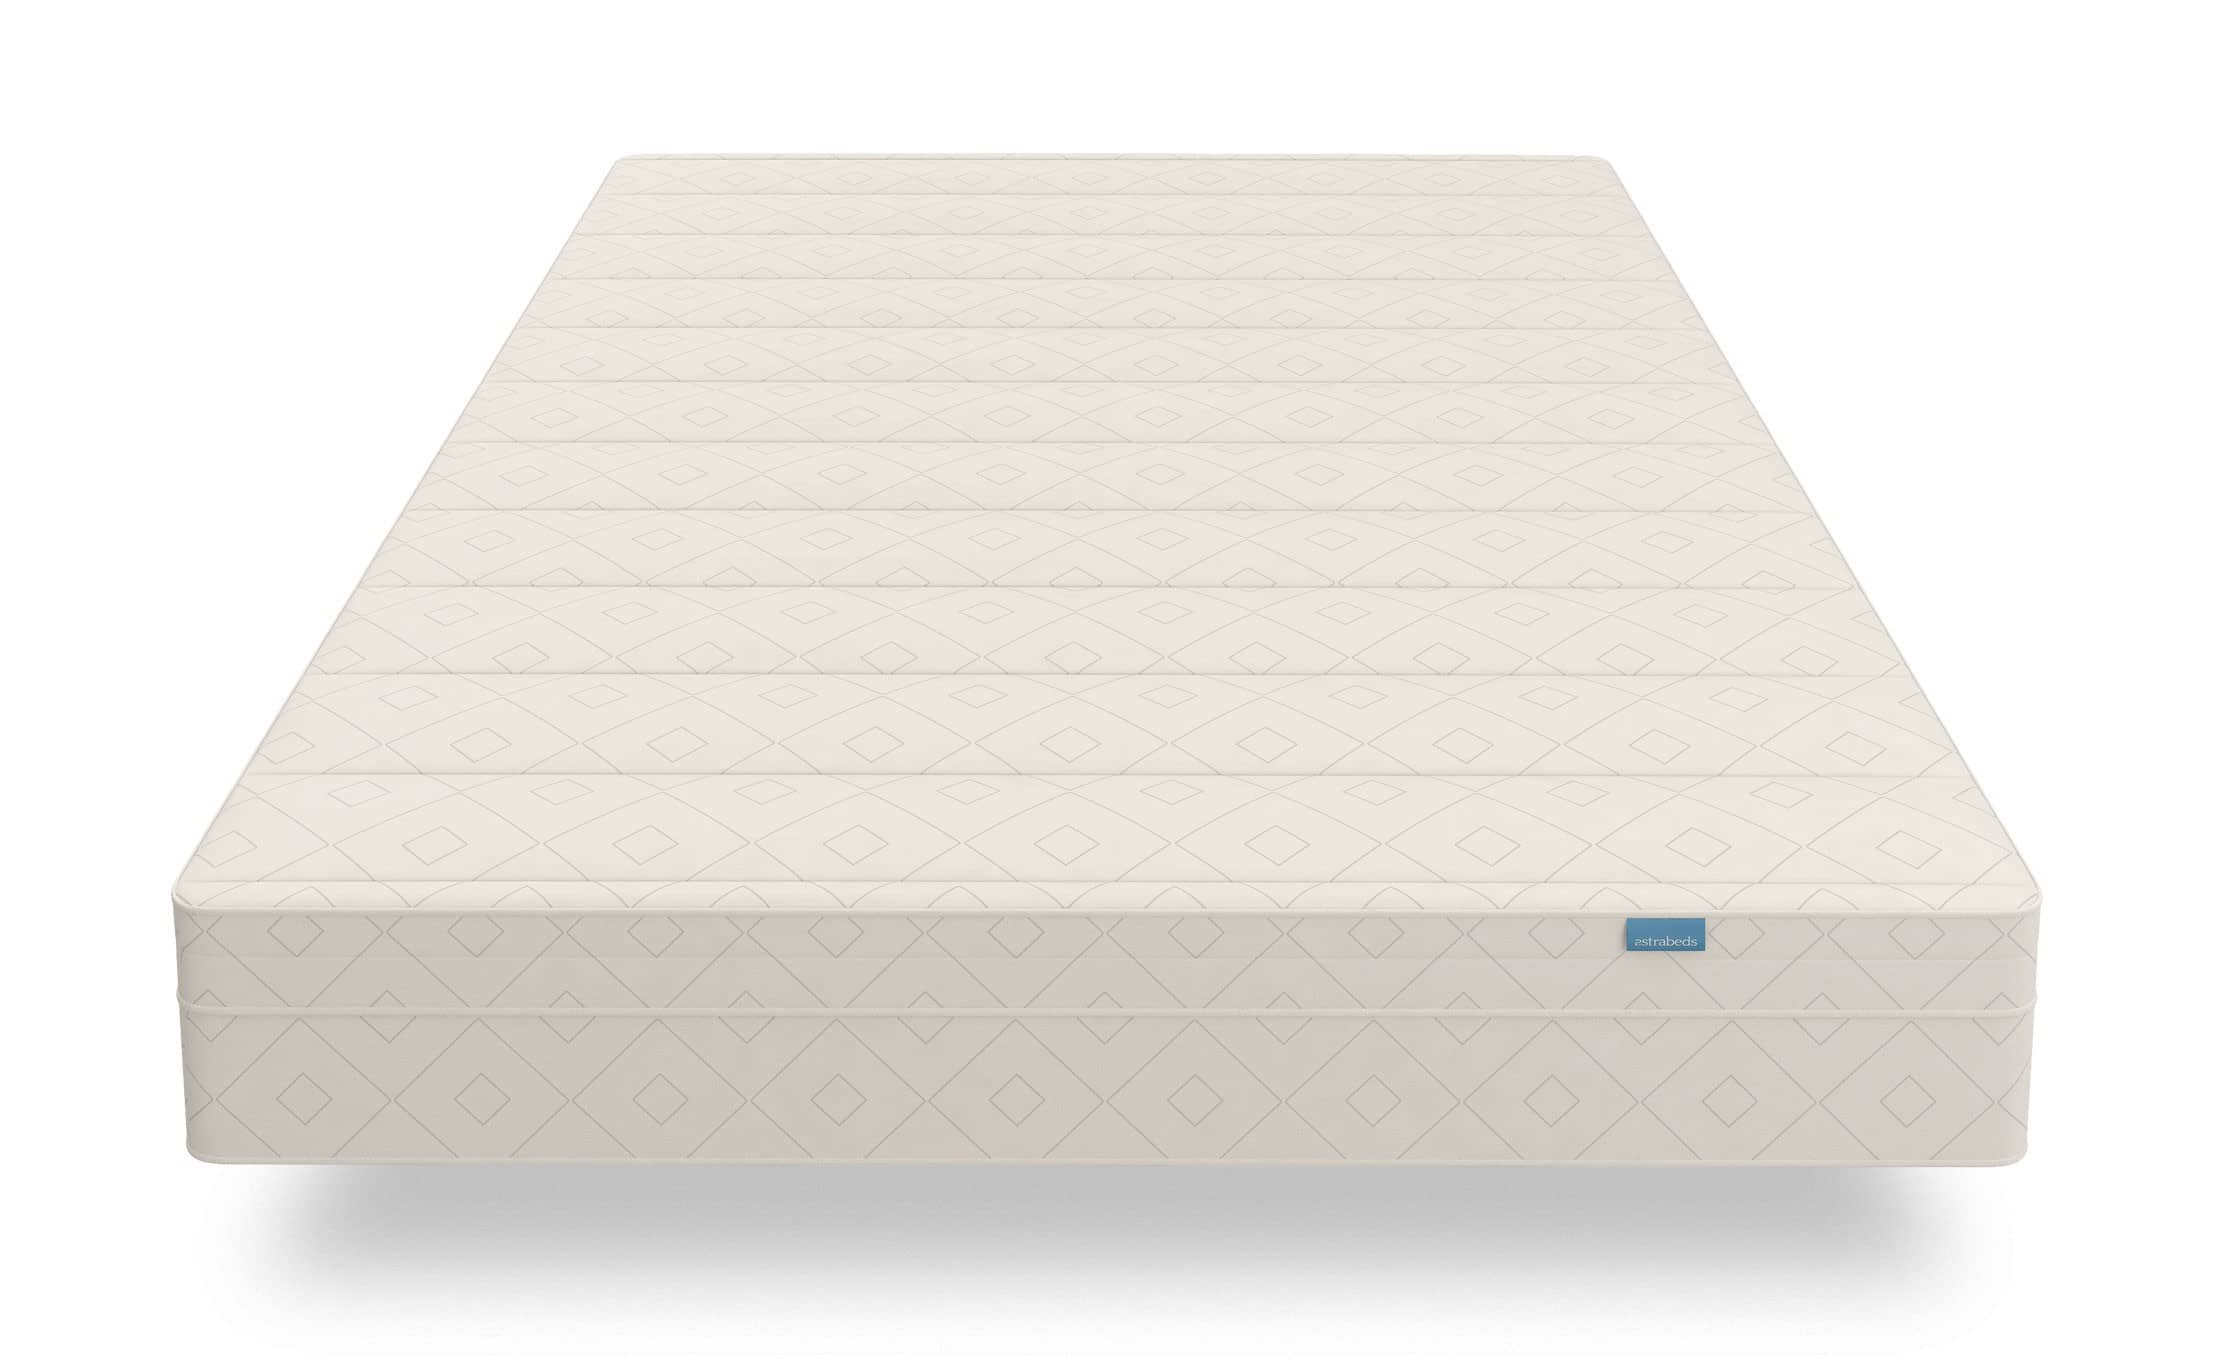 Latex Mattress Rating 88